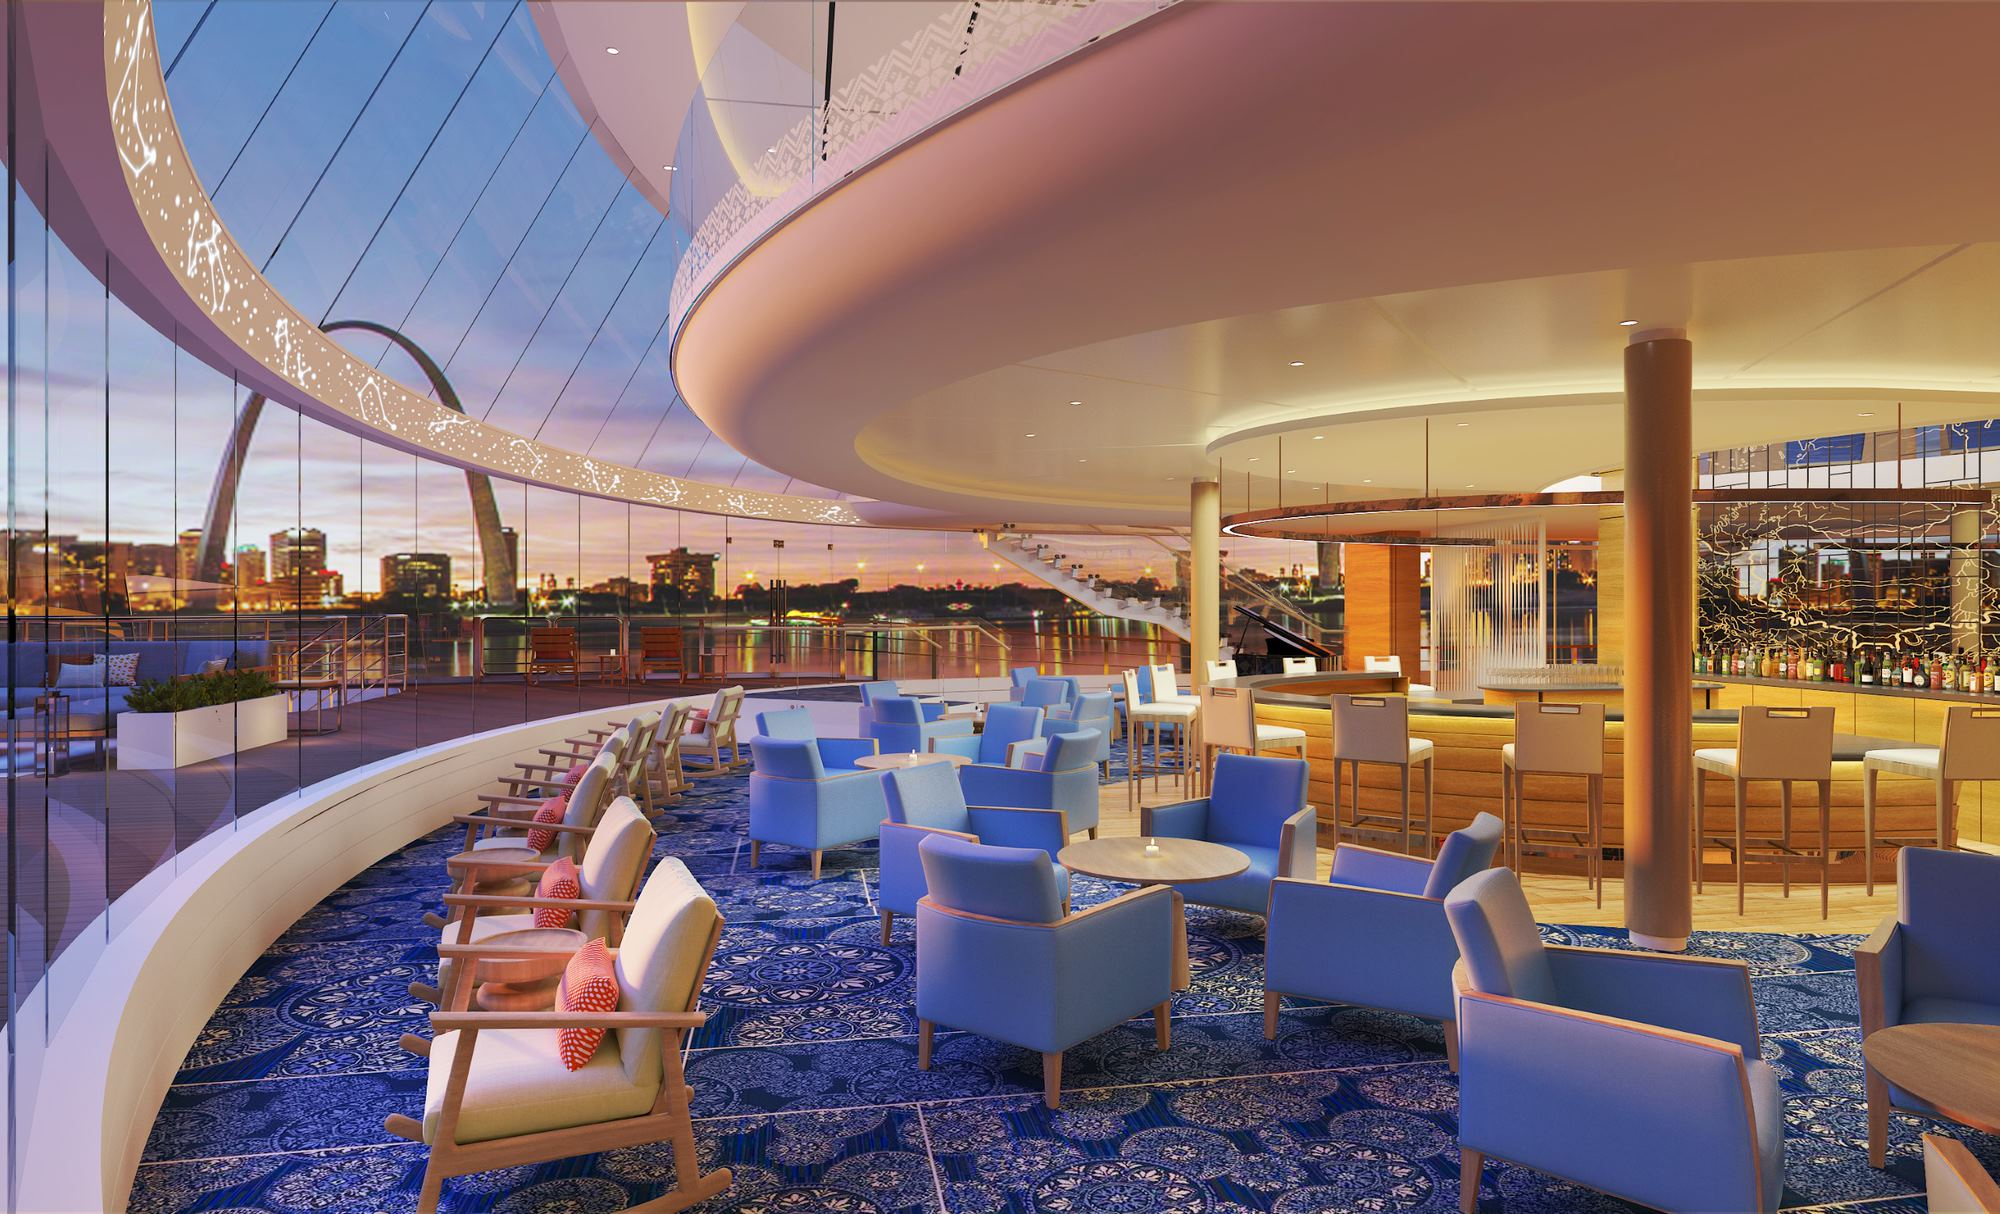 Keeping cruises on our minds